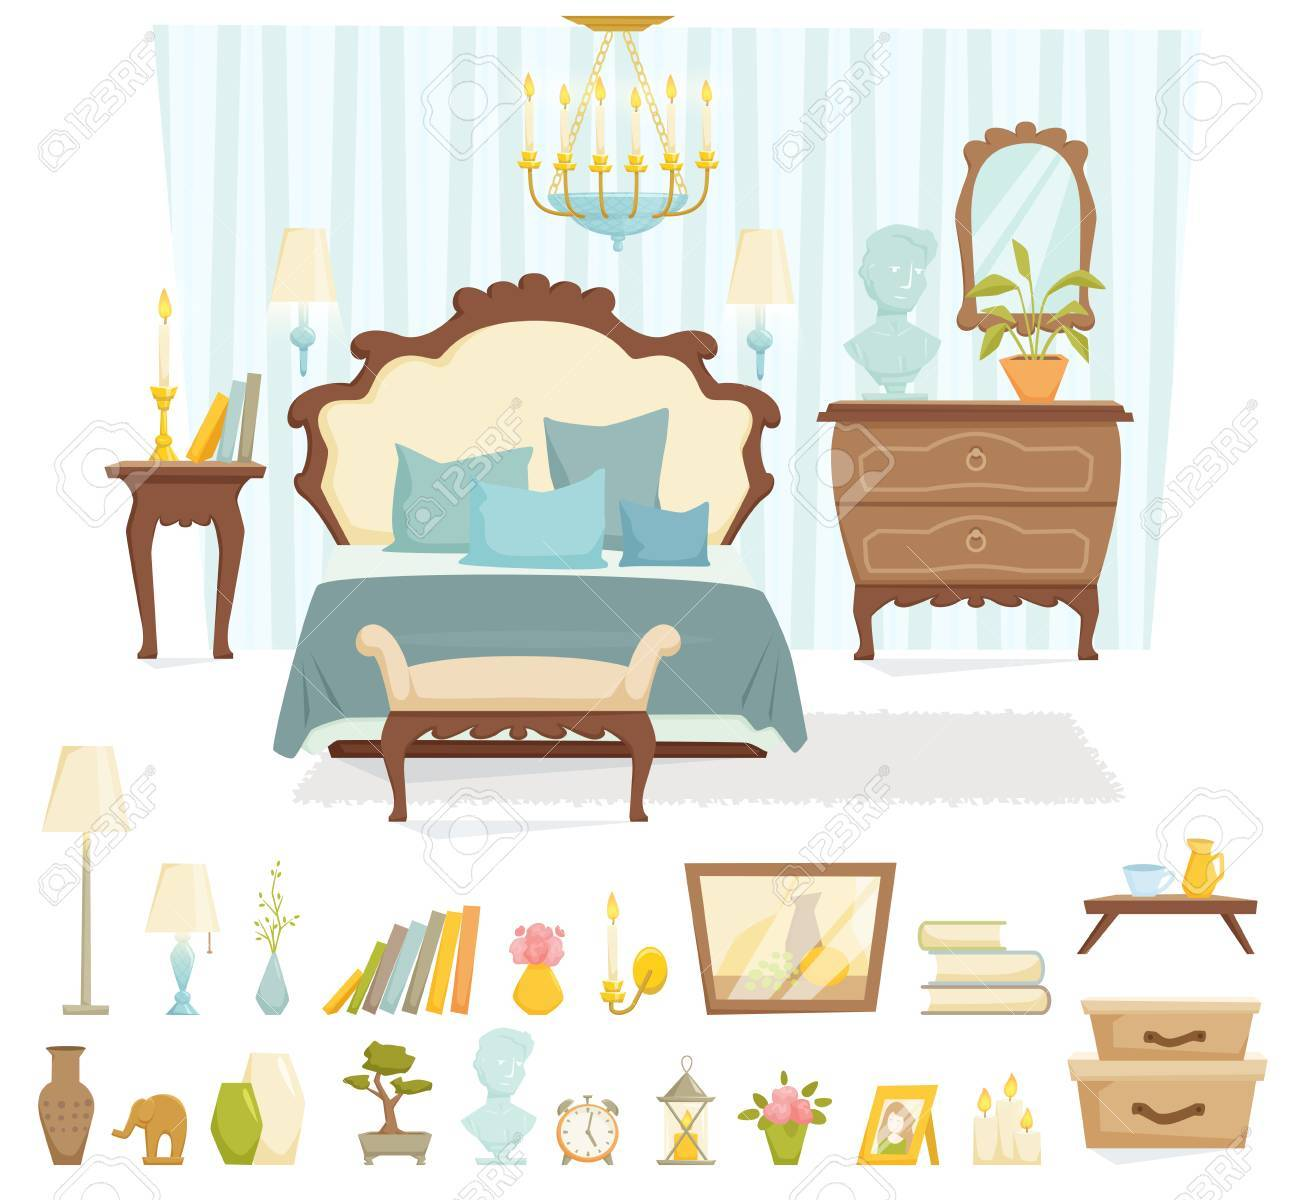 Bedroom interior with furniture and decoration in classic style bedroom interior cartoon vector illustration